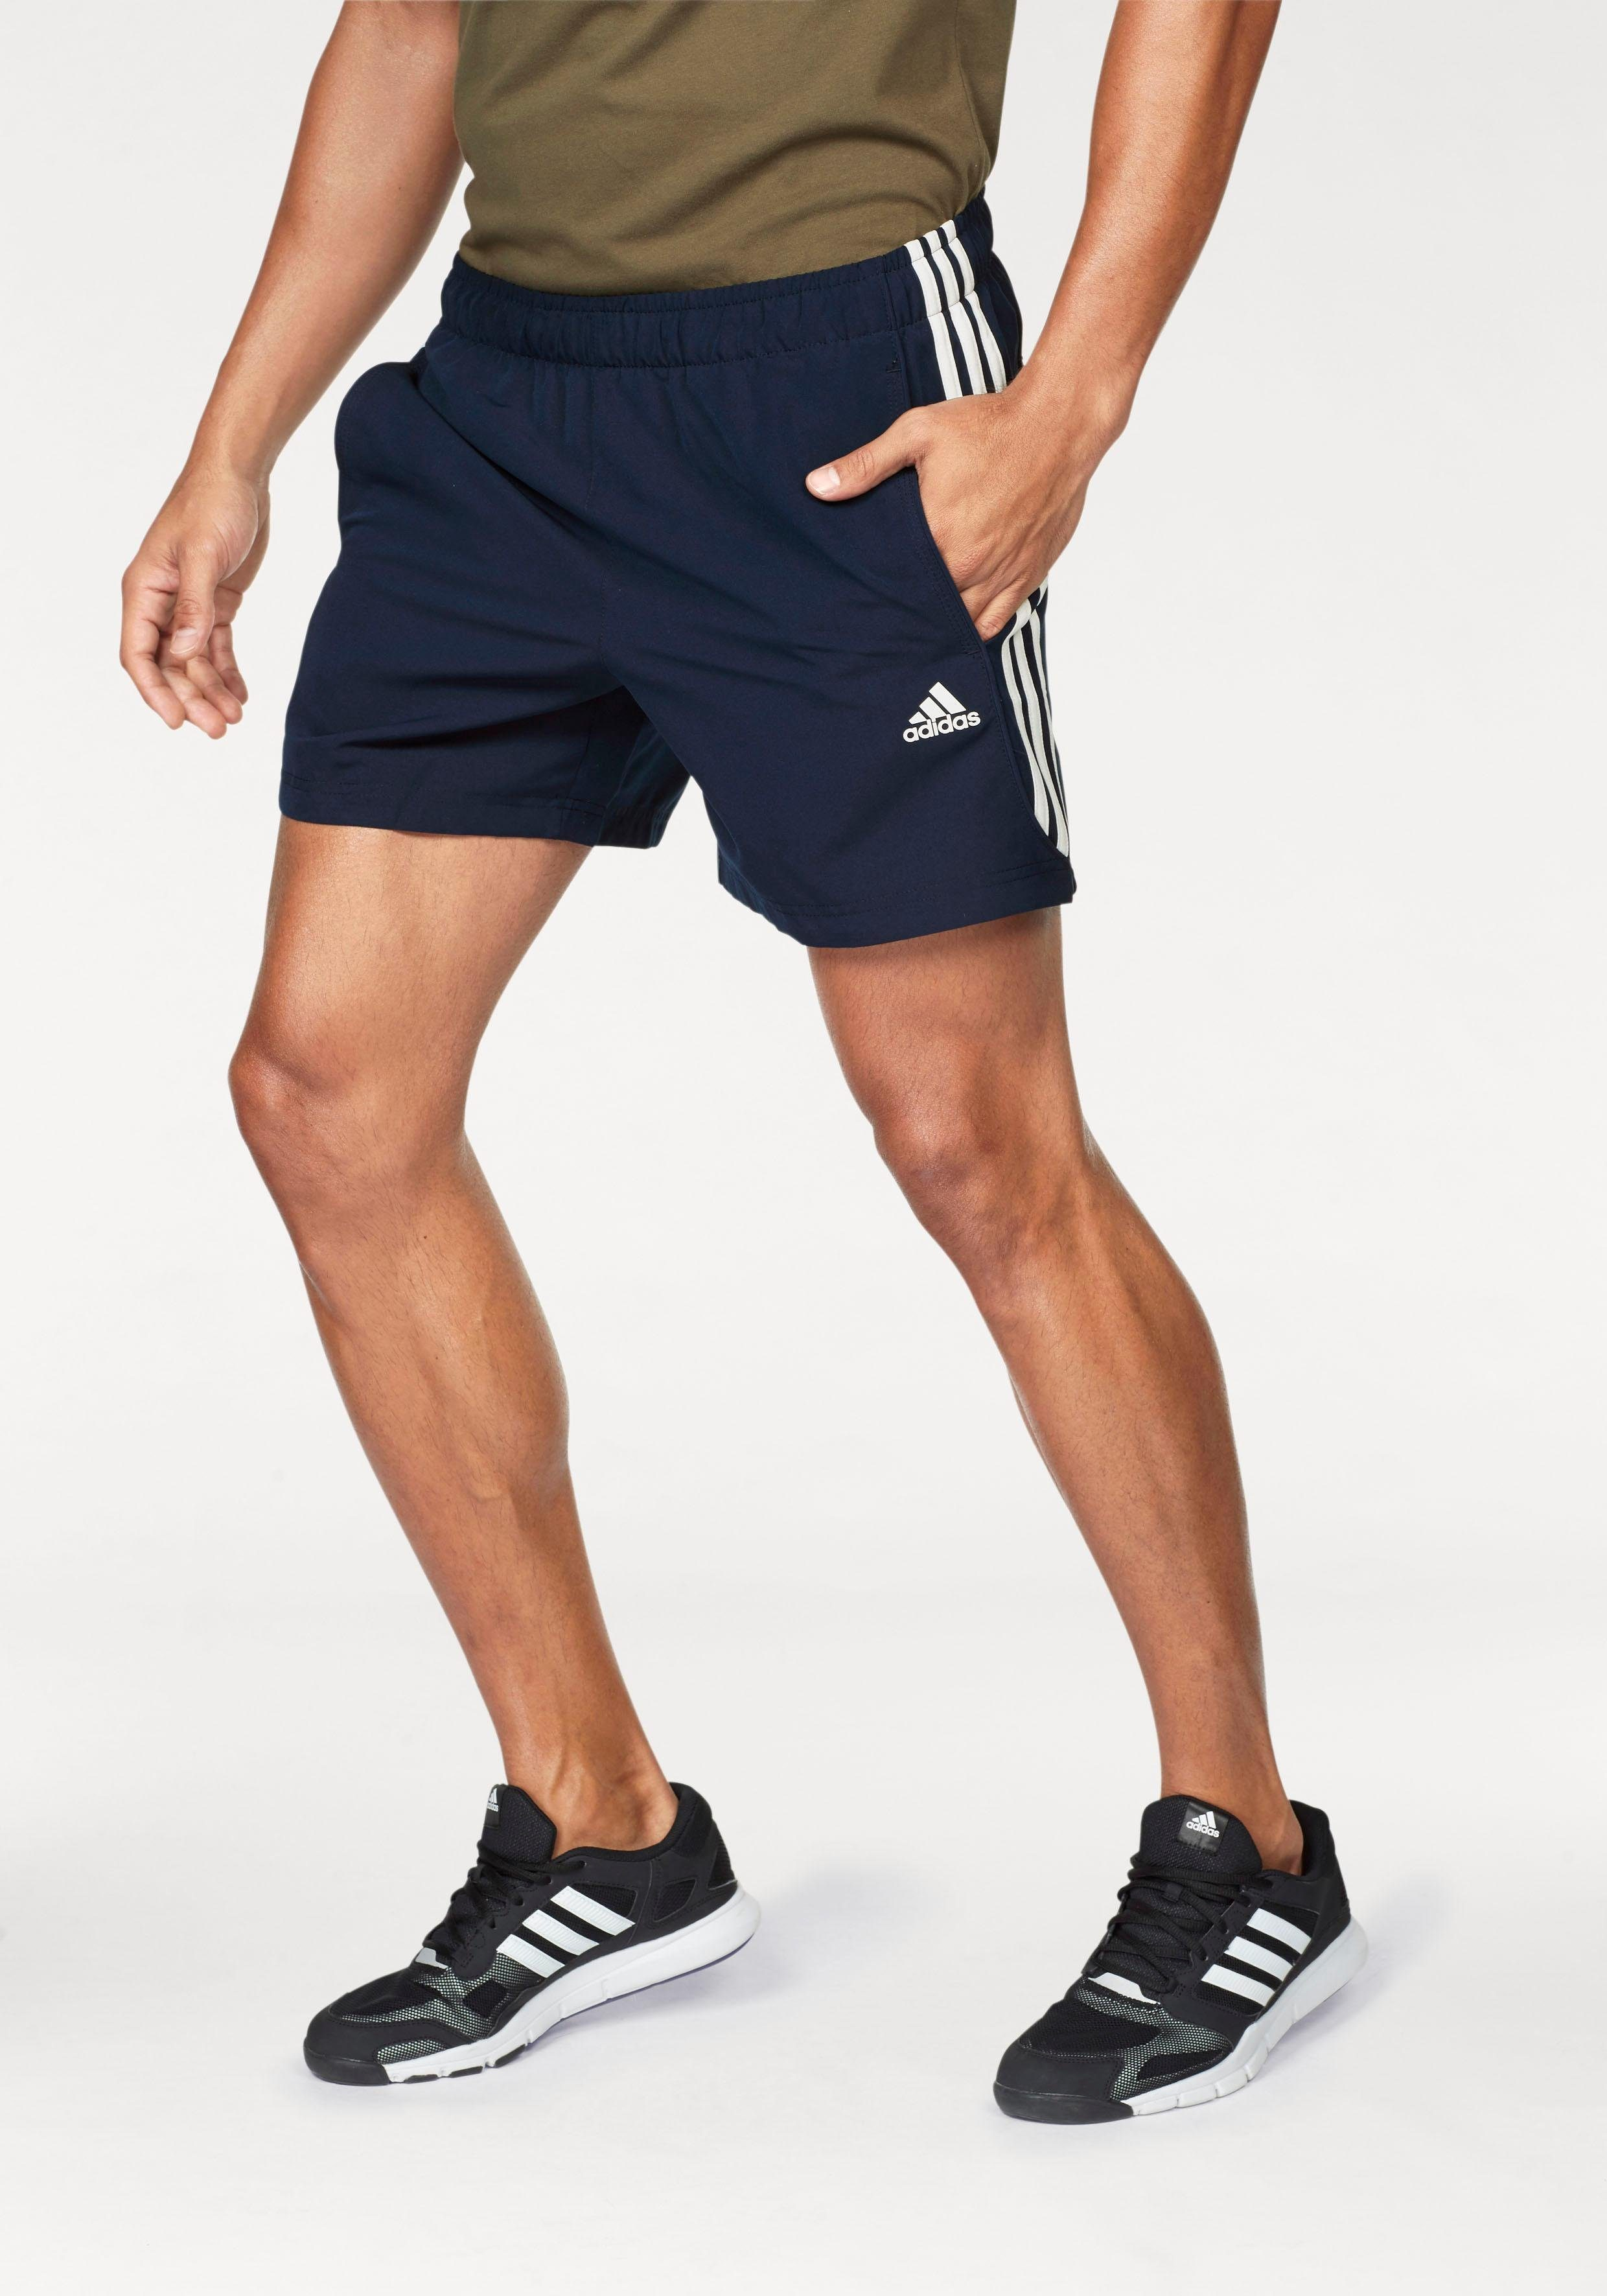 adidas herren essentials chelsea shorts